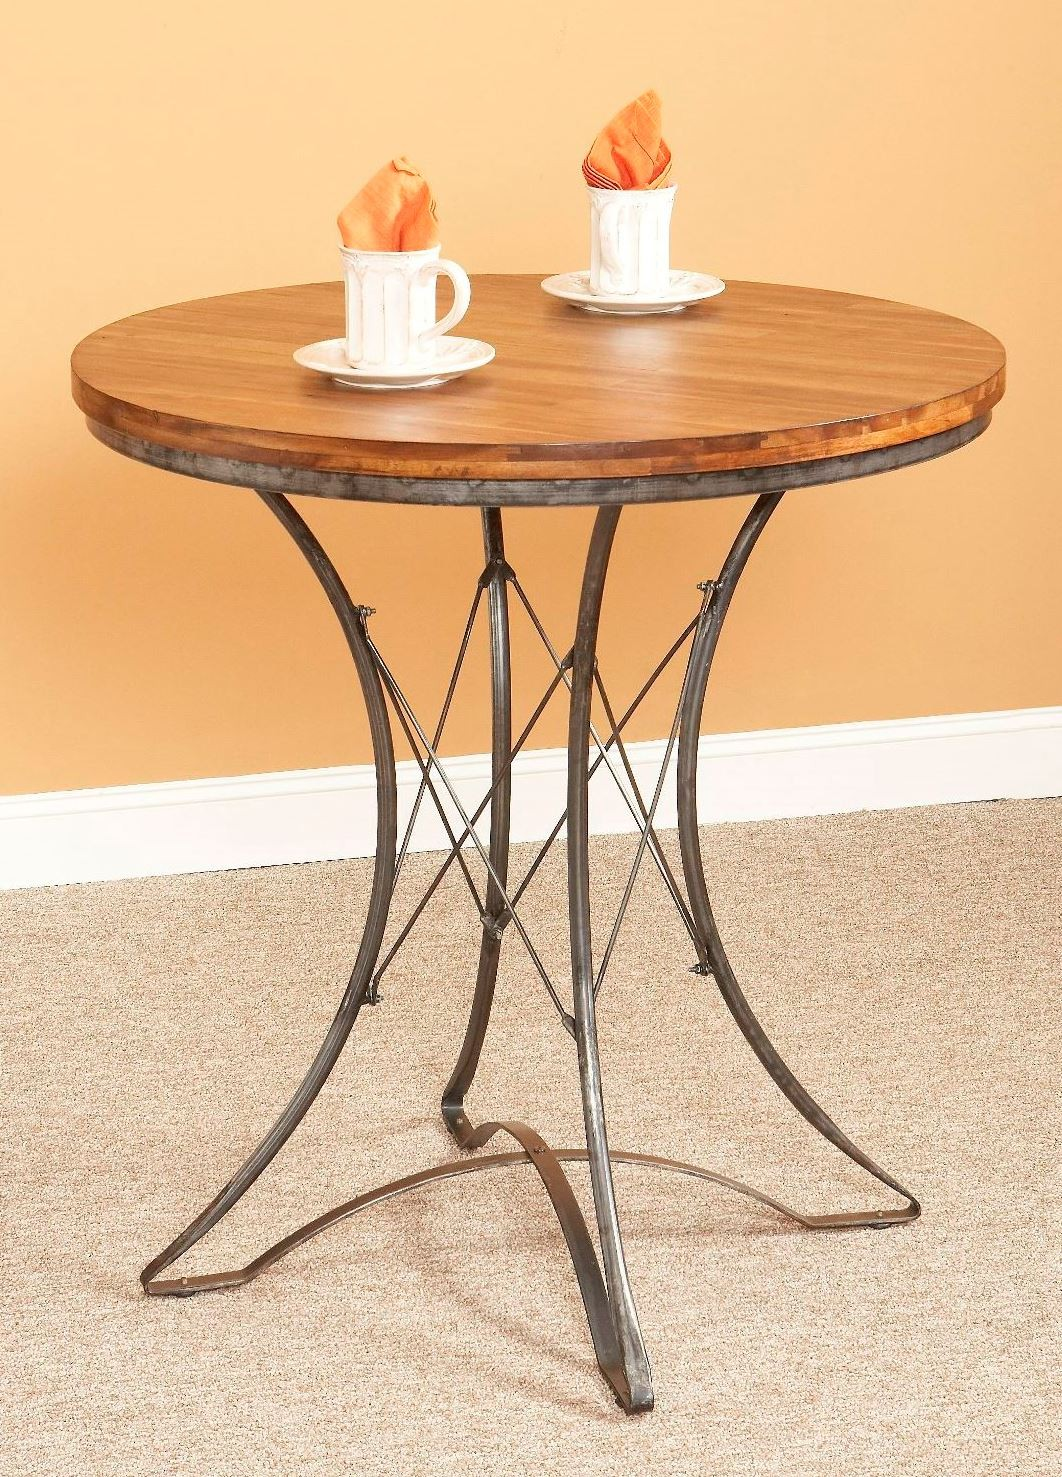 Abbey round pub table from largo d272 38 coleman furniture for Round pub table and chairs